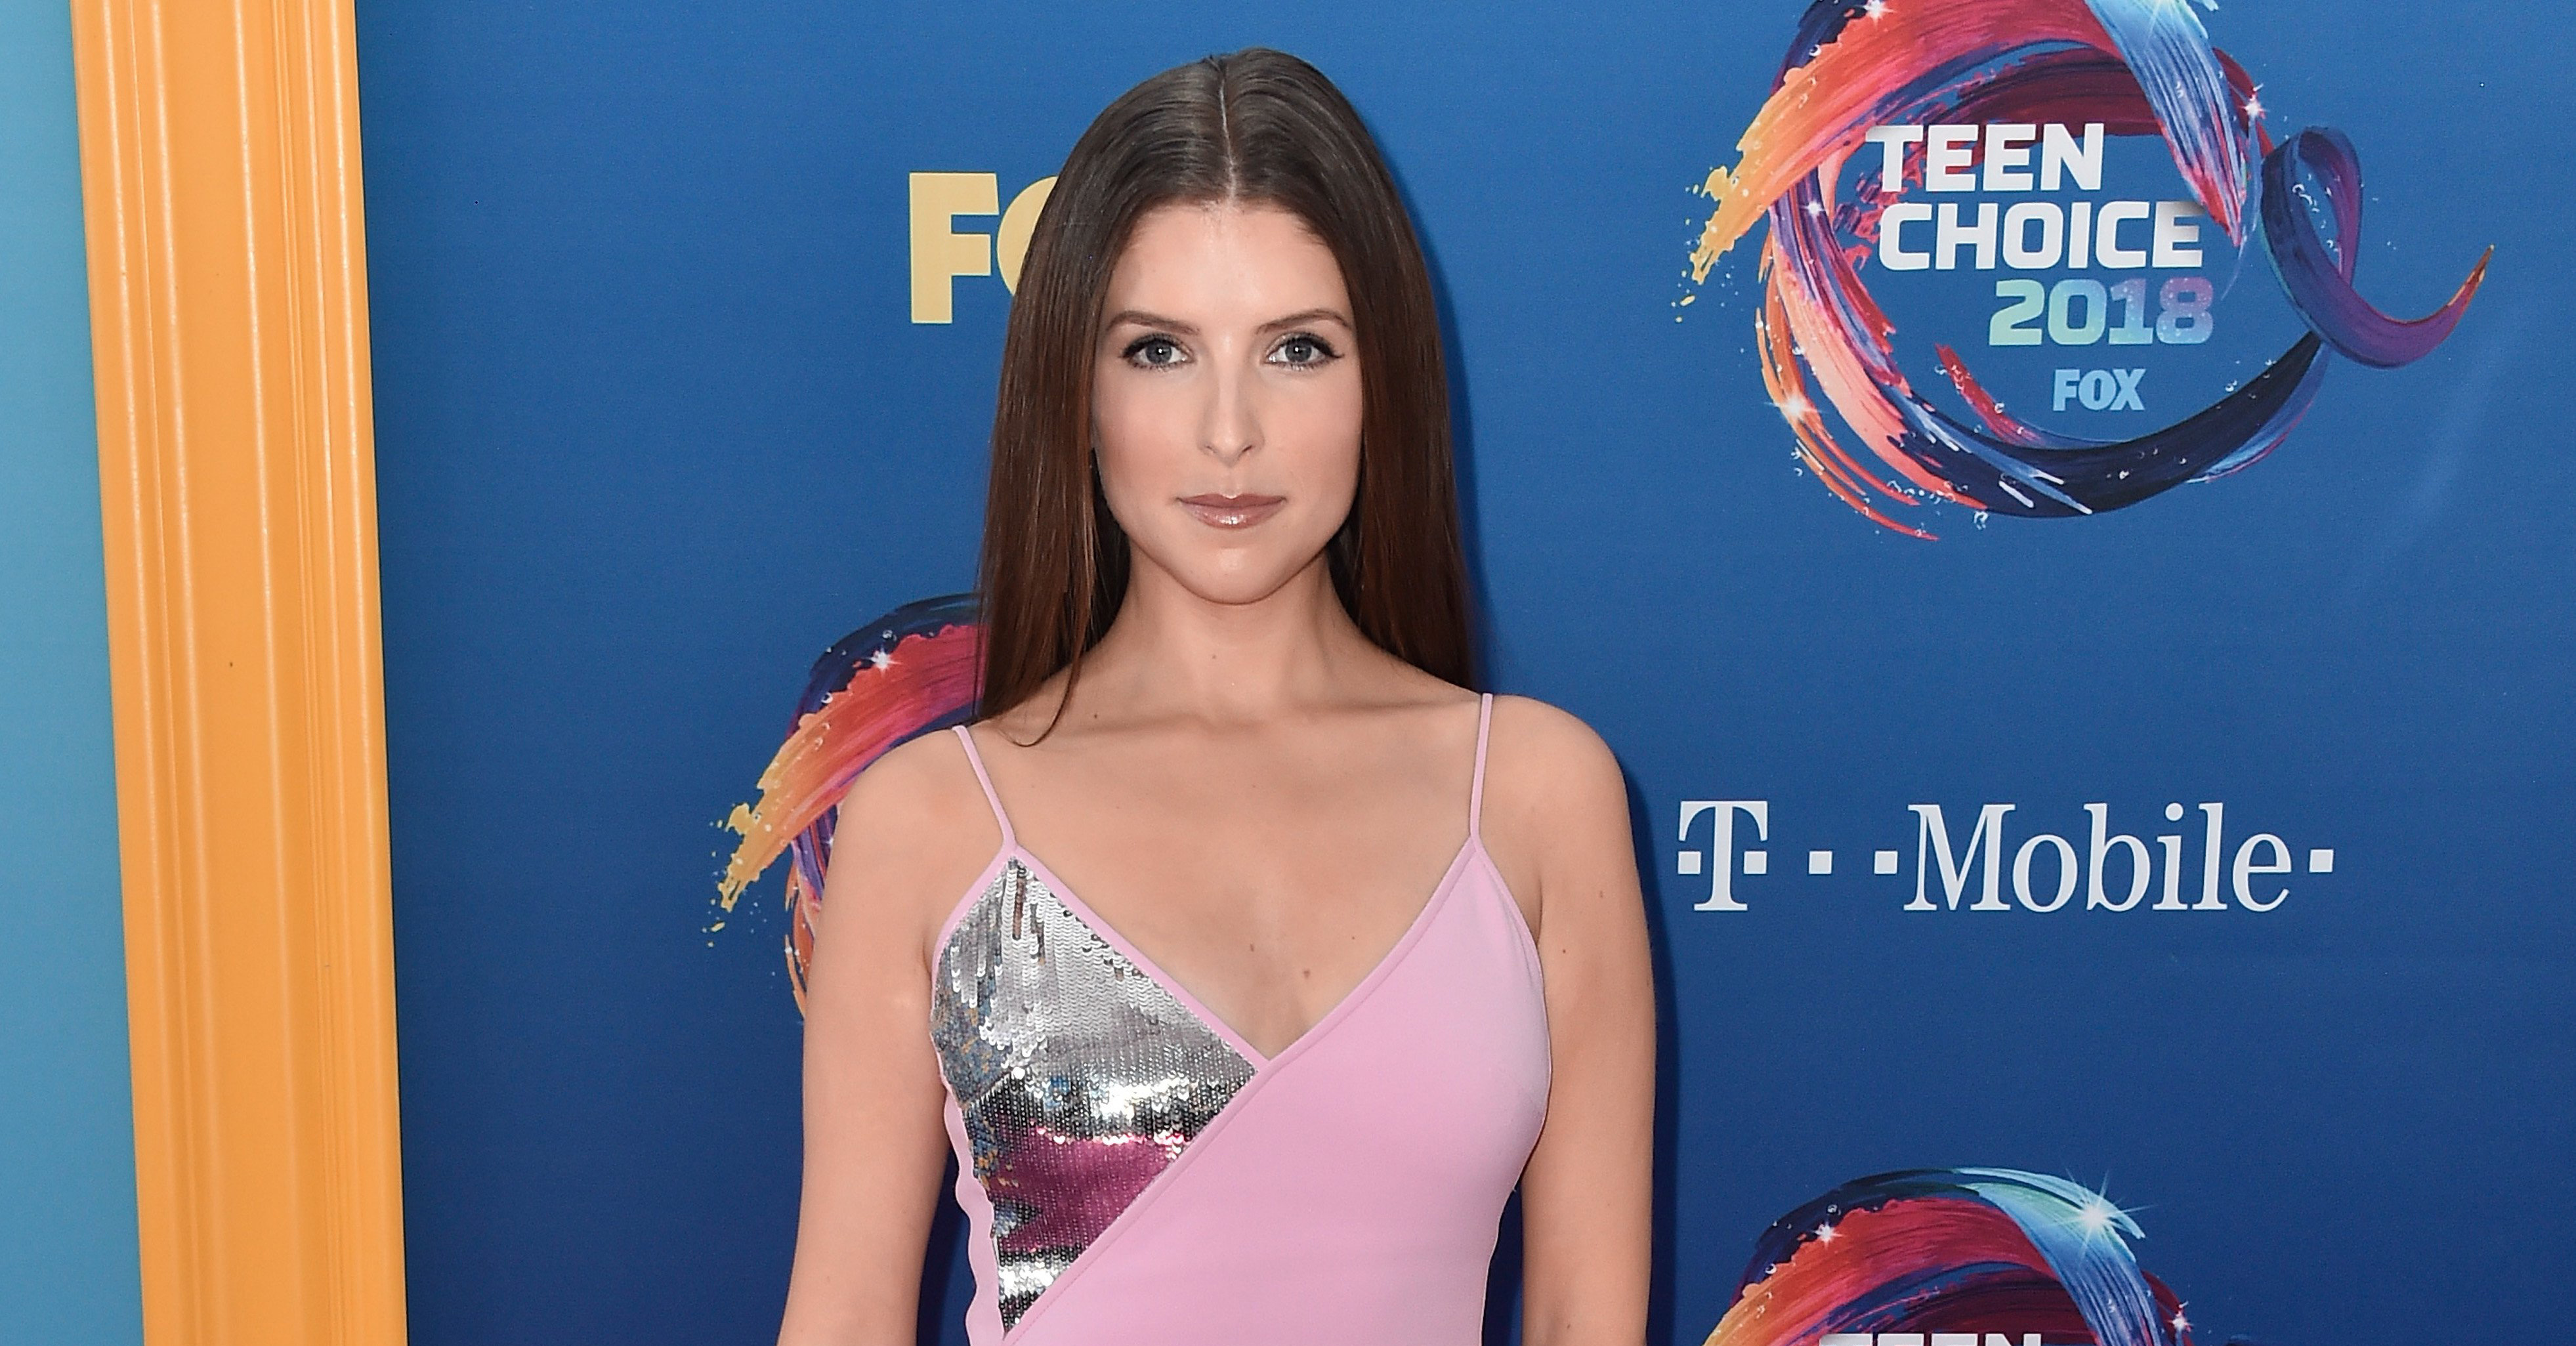 Anna-Kendrick-Throws-Shade-At-Ryan-Reynolds-After-She-Beats-Him-For-Choice-Twit-At-2018-Teen-Choice-Awards